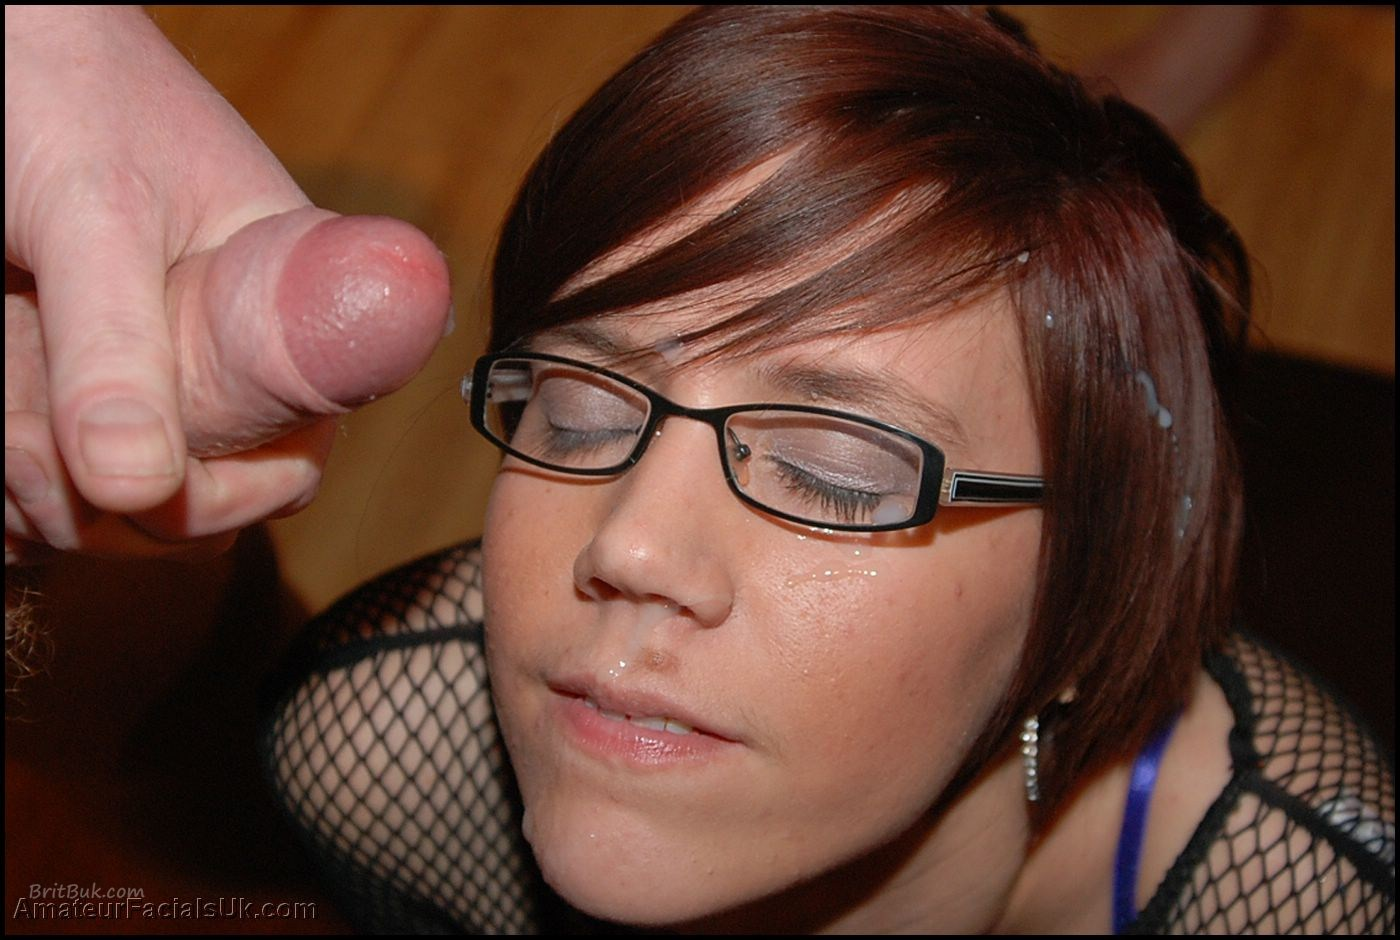 remarkable idea and two hot gloryhole sluts phrase magnificent Between